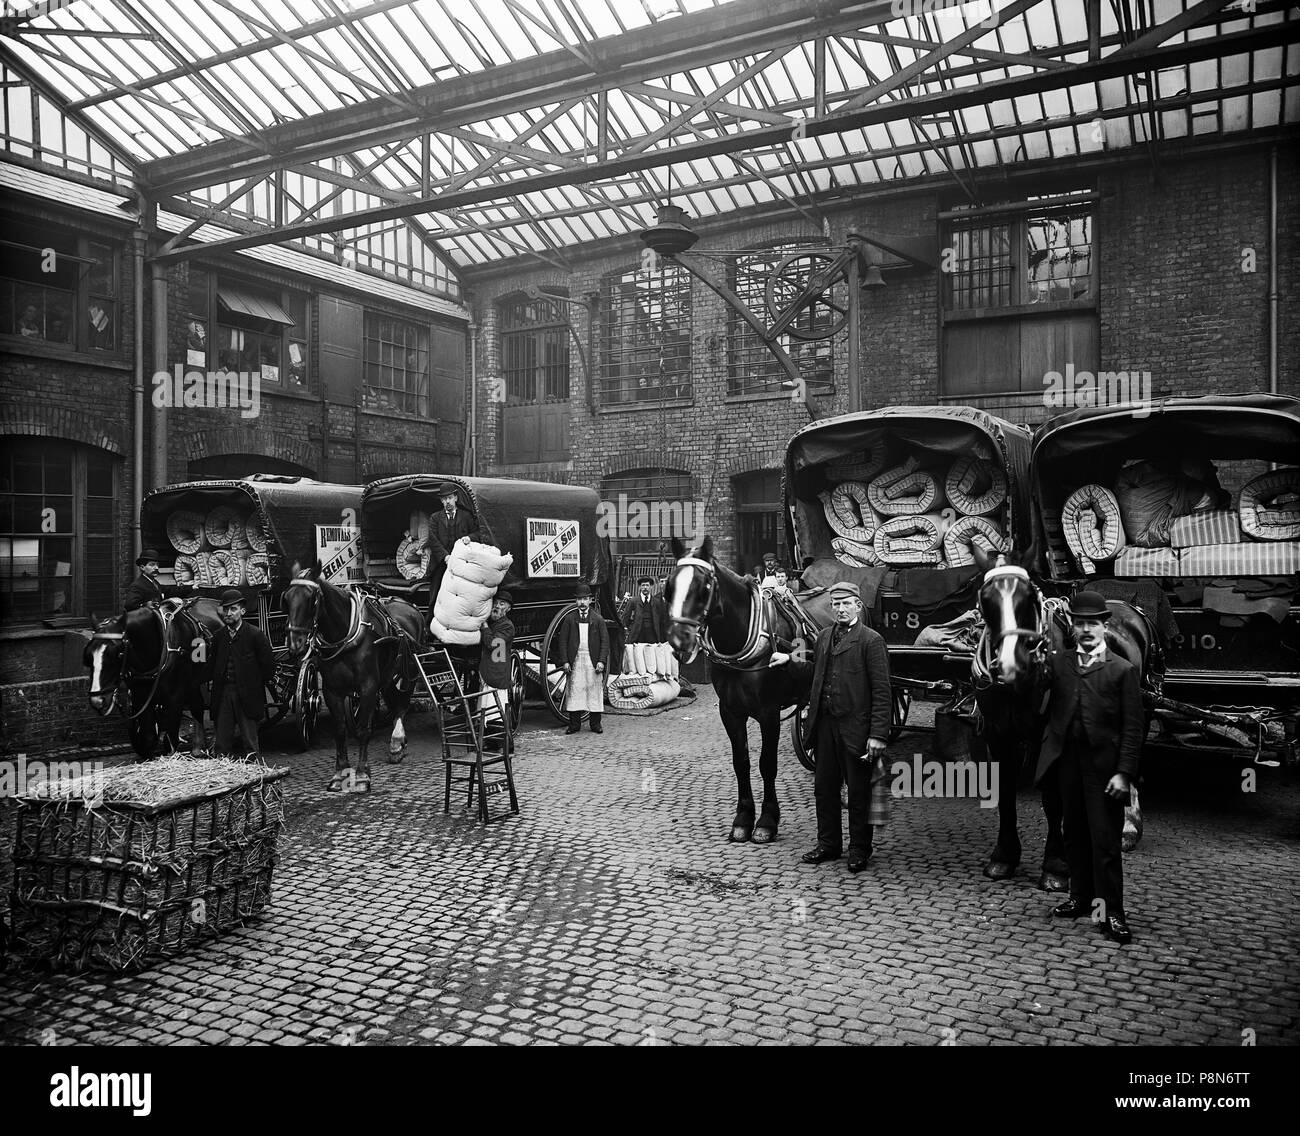 Mattress delivery vans, Heal & Son Ltd, 195-199 Tottenham Court Road, Camden, London, 1897. Staff and horse-drawn wagons loaded with mattresses an - Stock Image